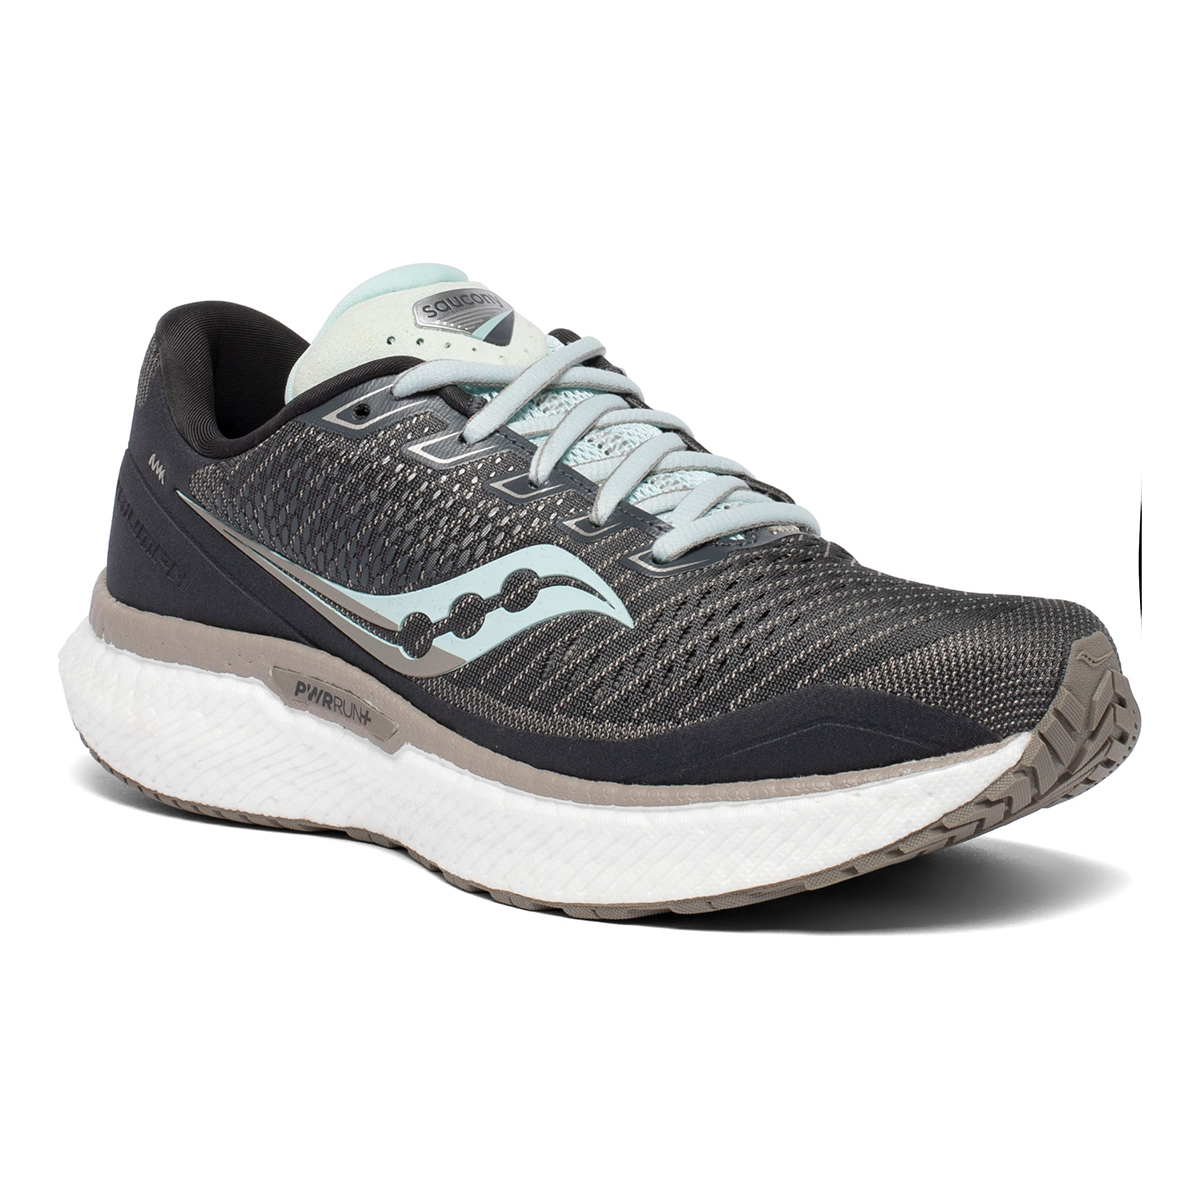 Women's Saucony Triumph 18 Running Shoe - Color: Black/Charcoal - Size: 5 - Width: Regular, Black/Charcoal, large, image 4